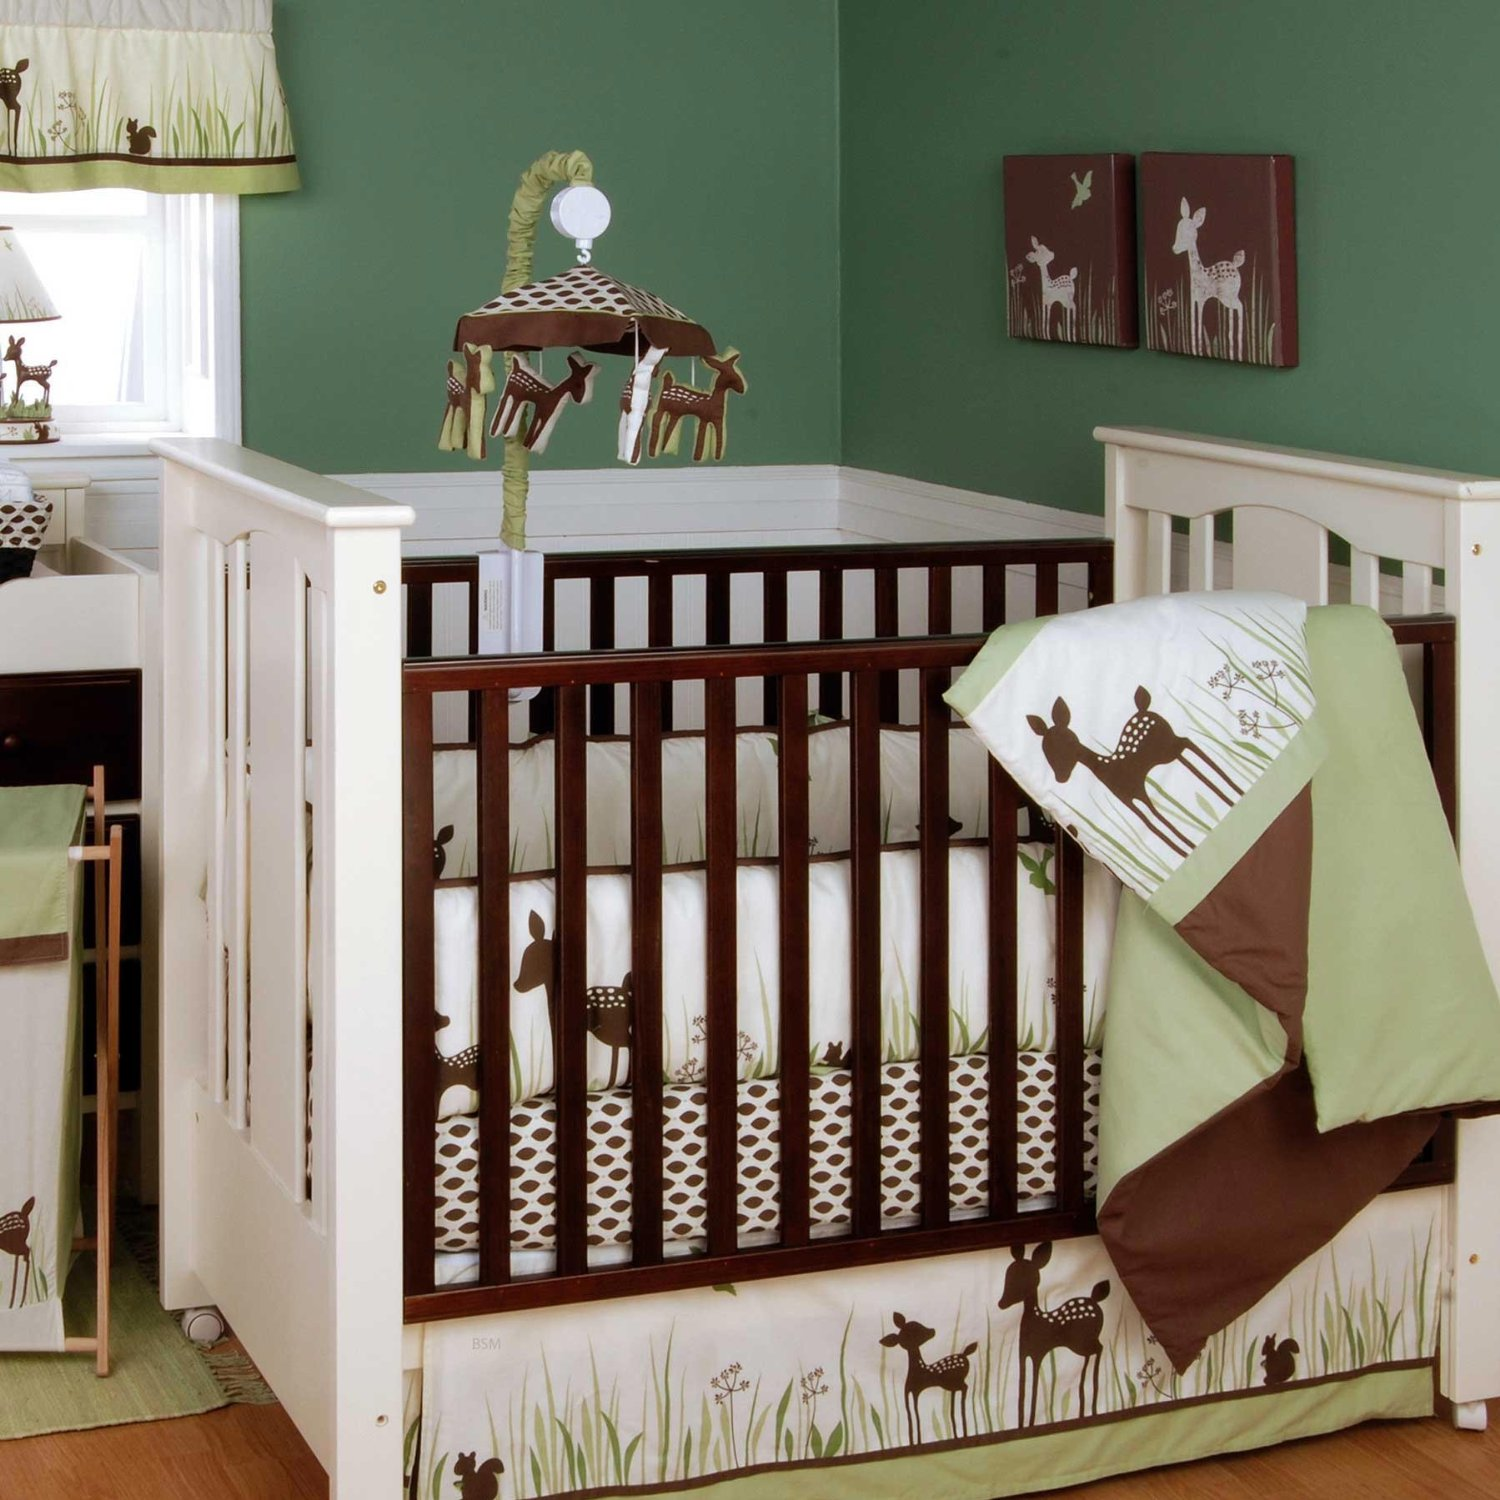 Mini Baby Cribs | Cheap Camo Crib Bedding Sets | Cheap Cribs